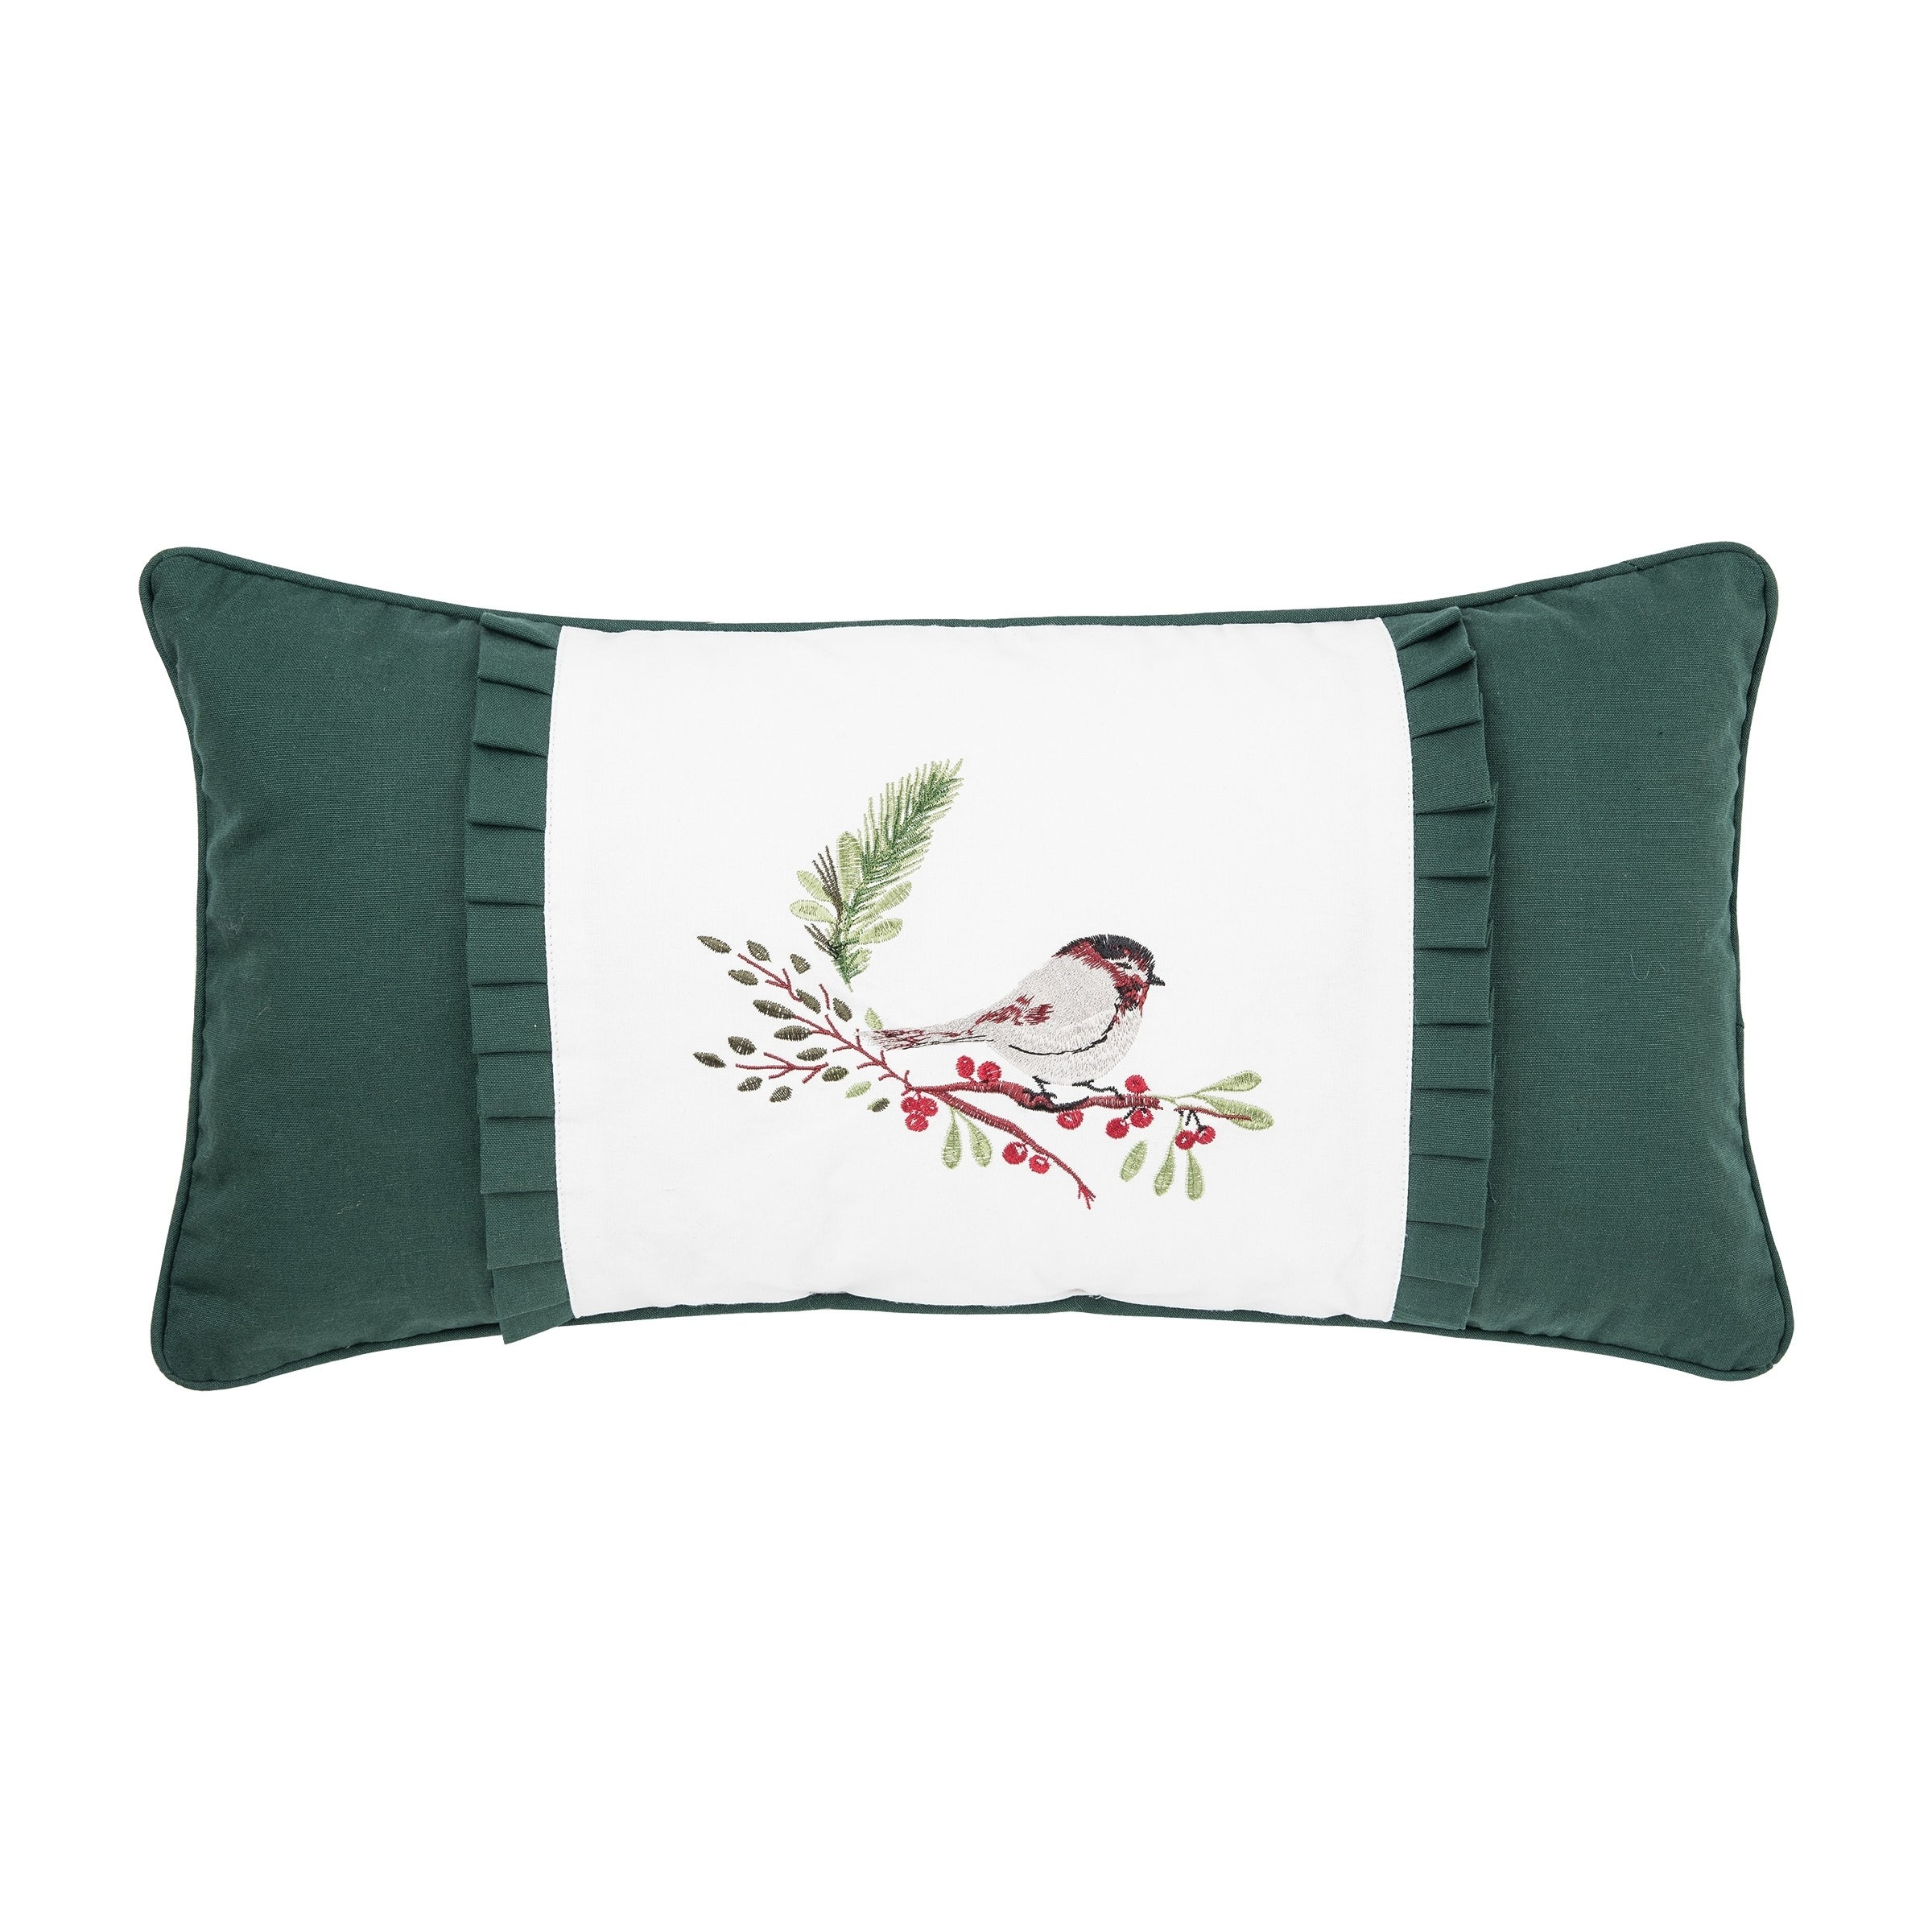 Chickadee or Cardinal 12 x 24 Pillow (Chickadee)